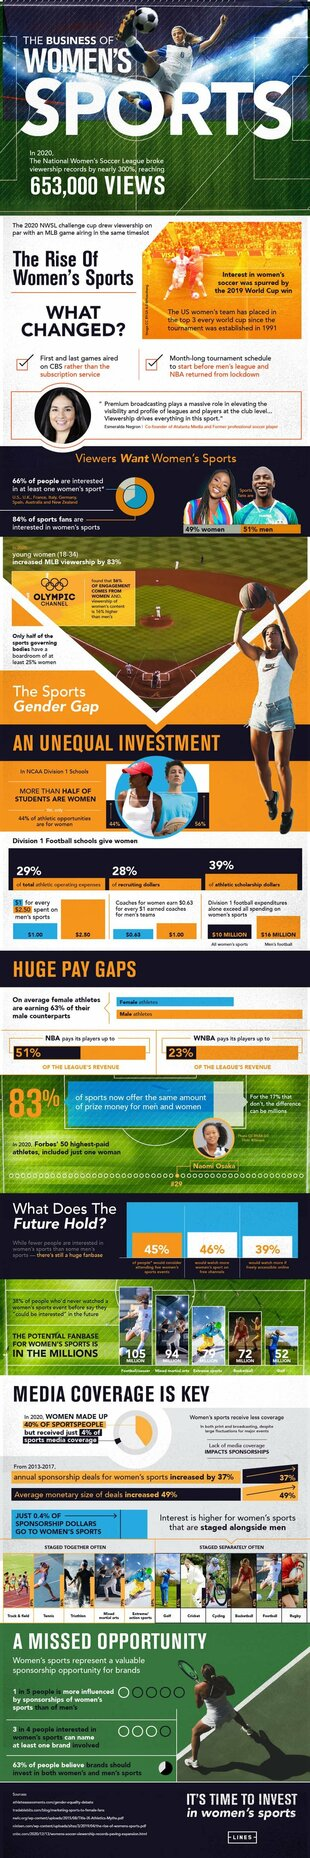 The popularity of women's sports is growing but the pay gap ... via Brian Wallace